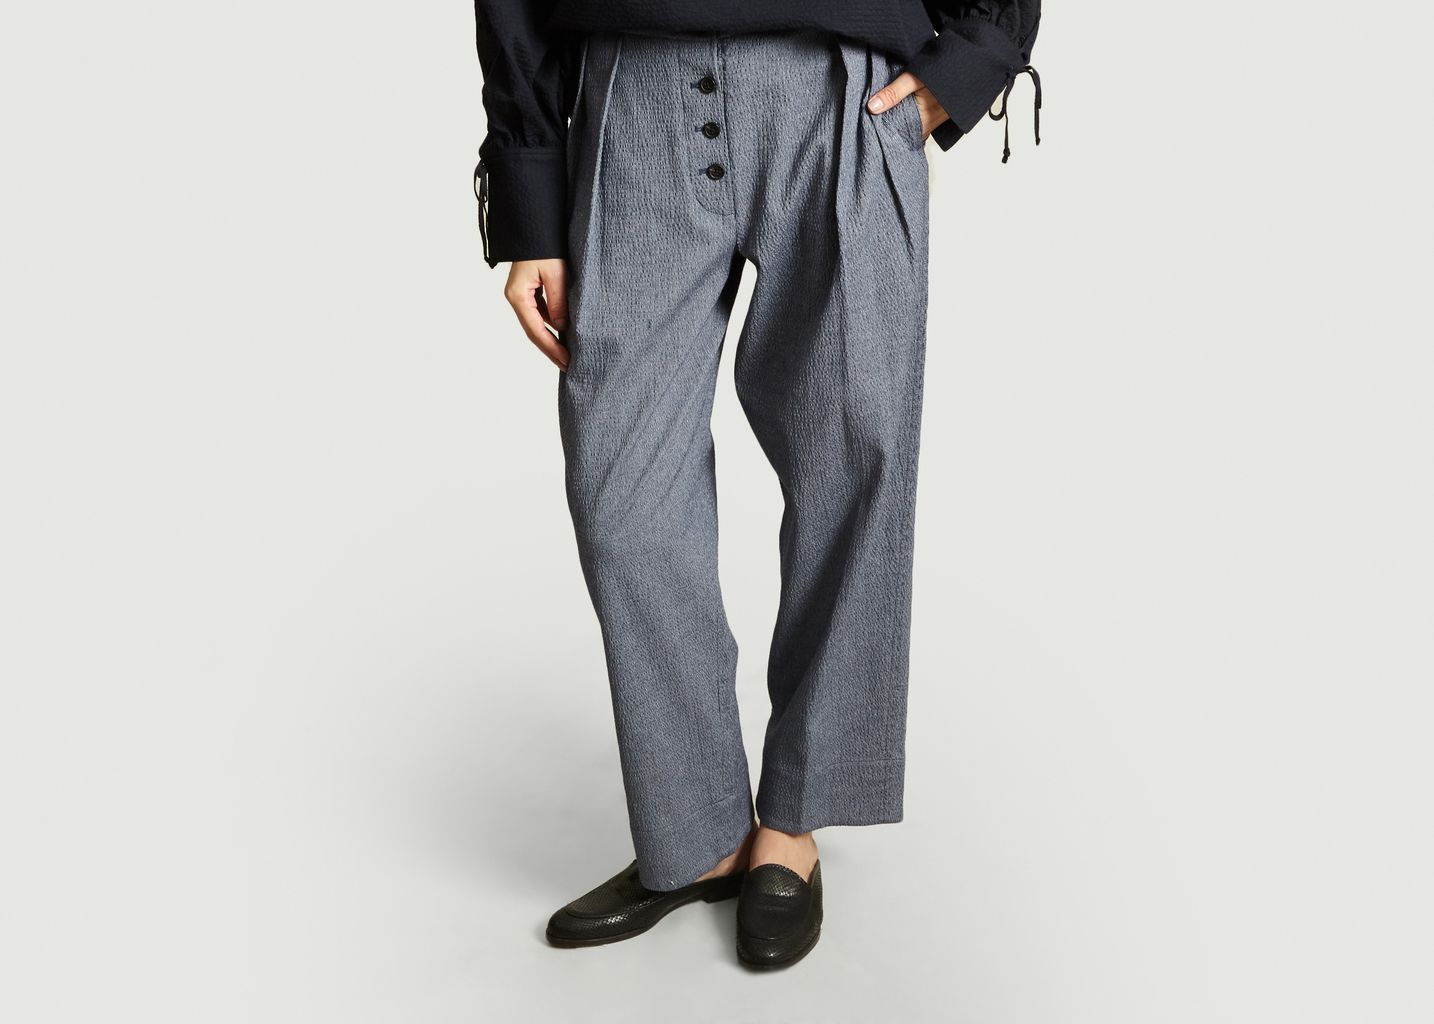 Pantalon Anoda - By Malene Birger